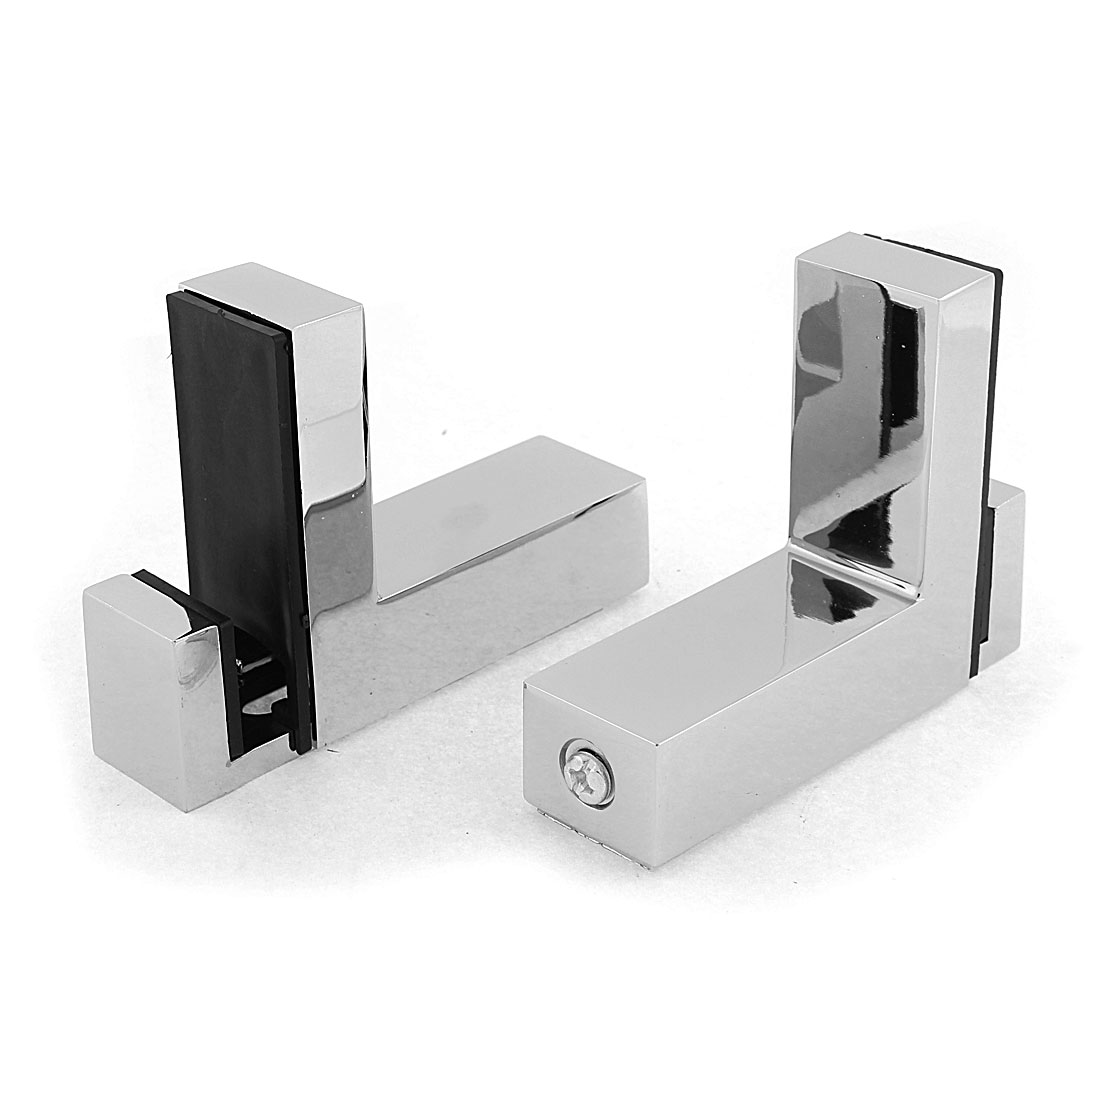 Adjustable 27mm Thick Glass Shelf Clip Clamp Support Bracket 2pcs